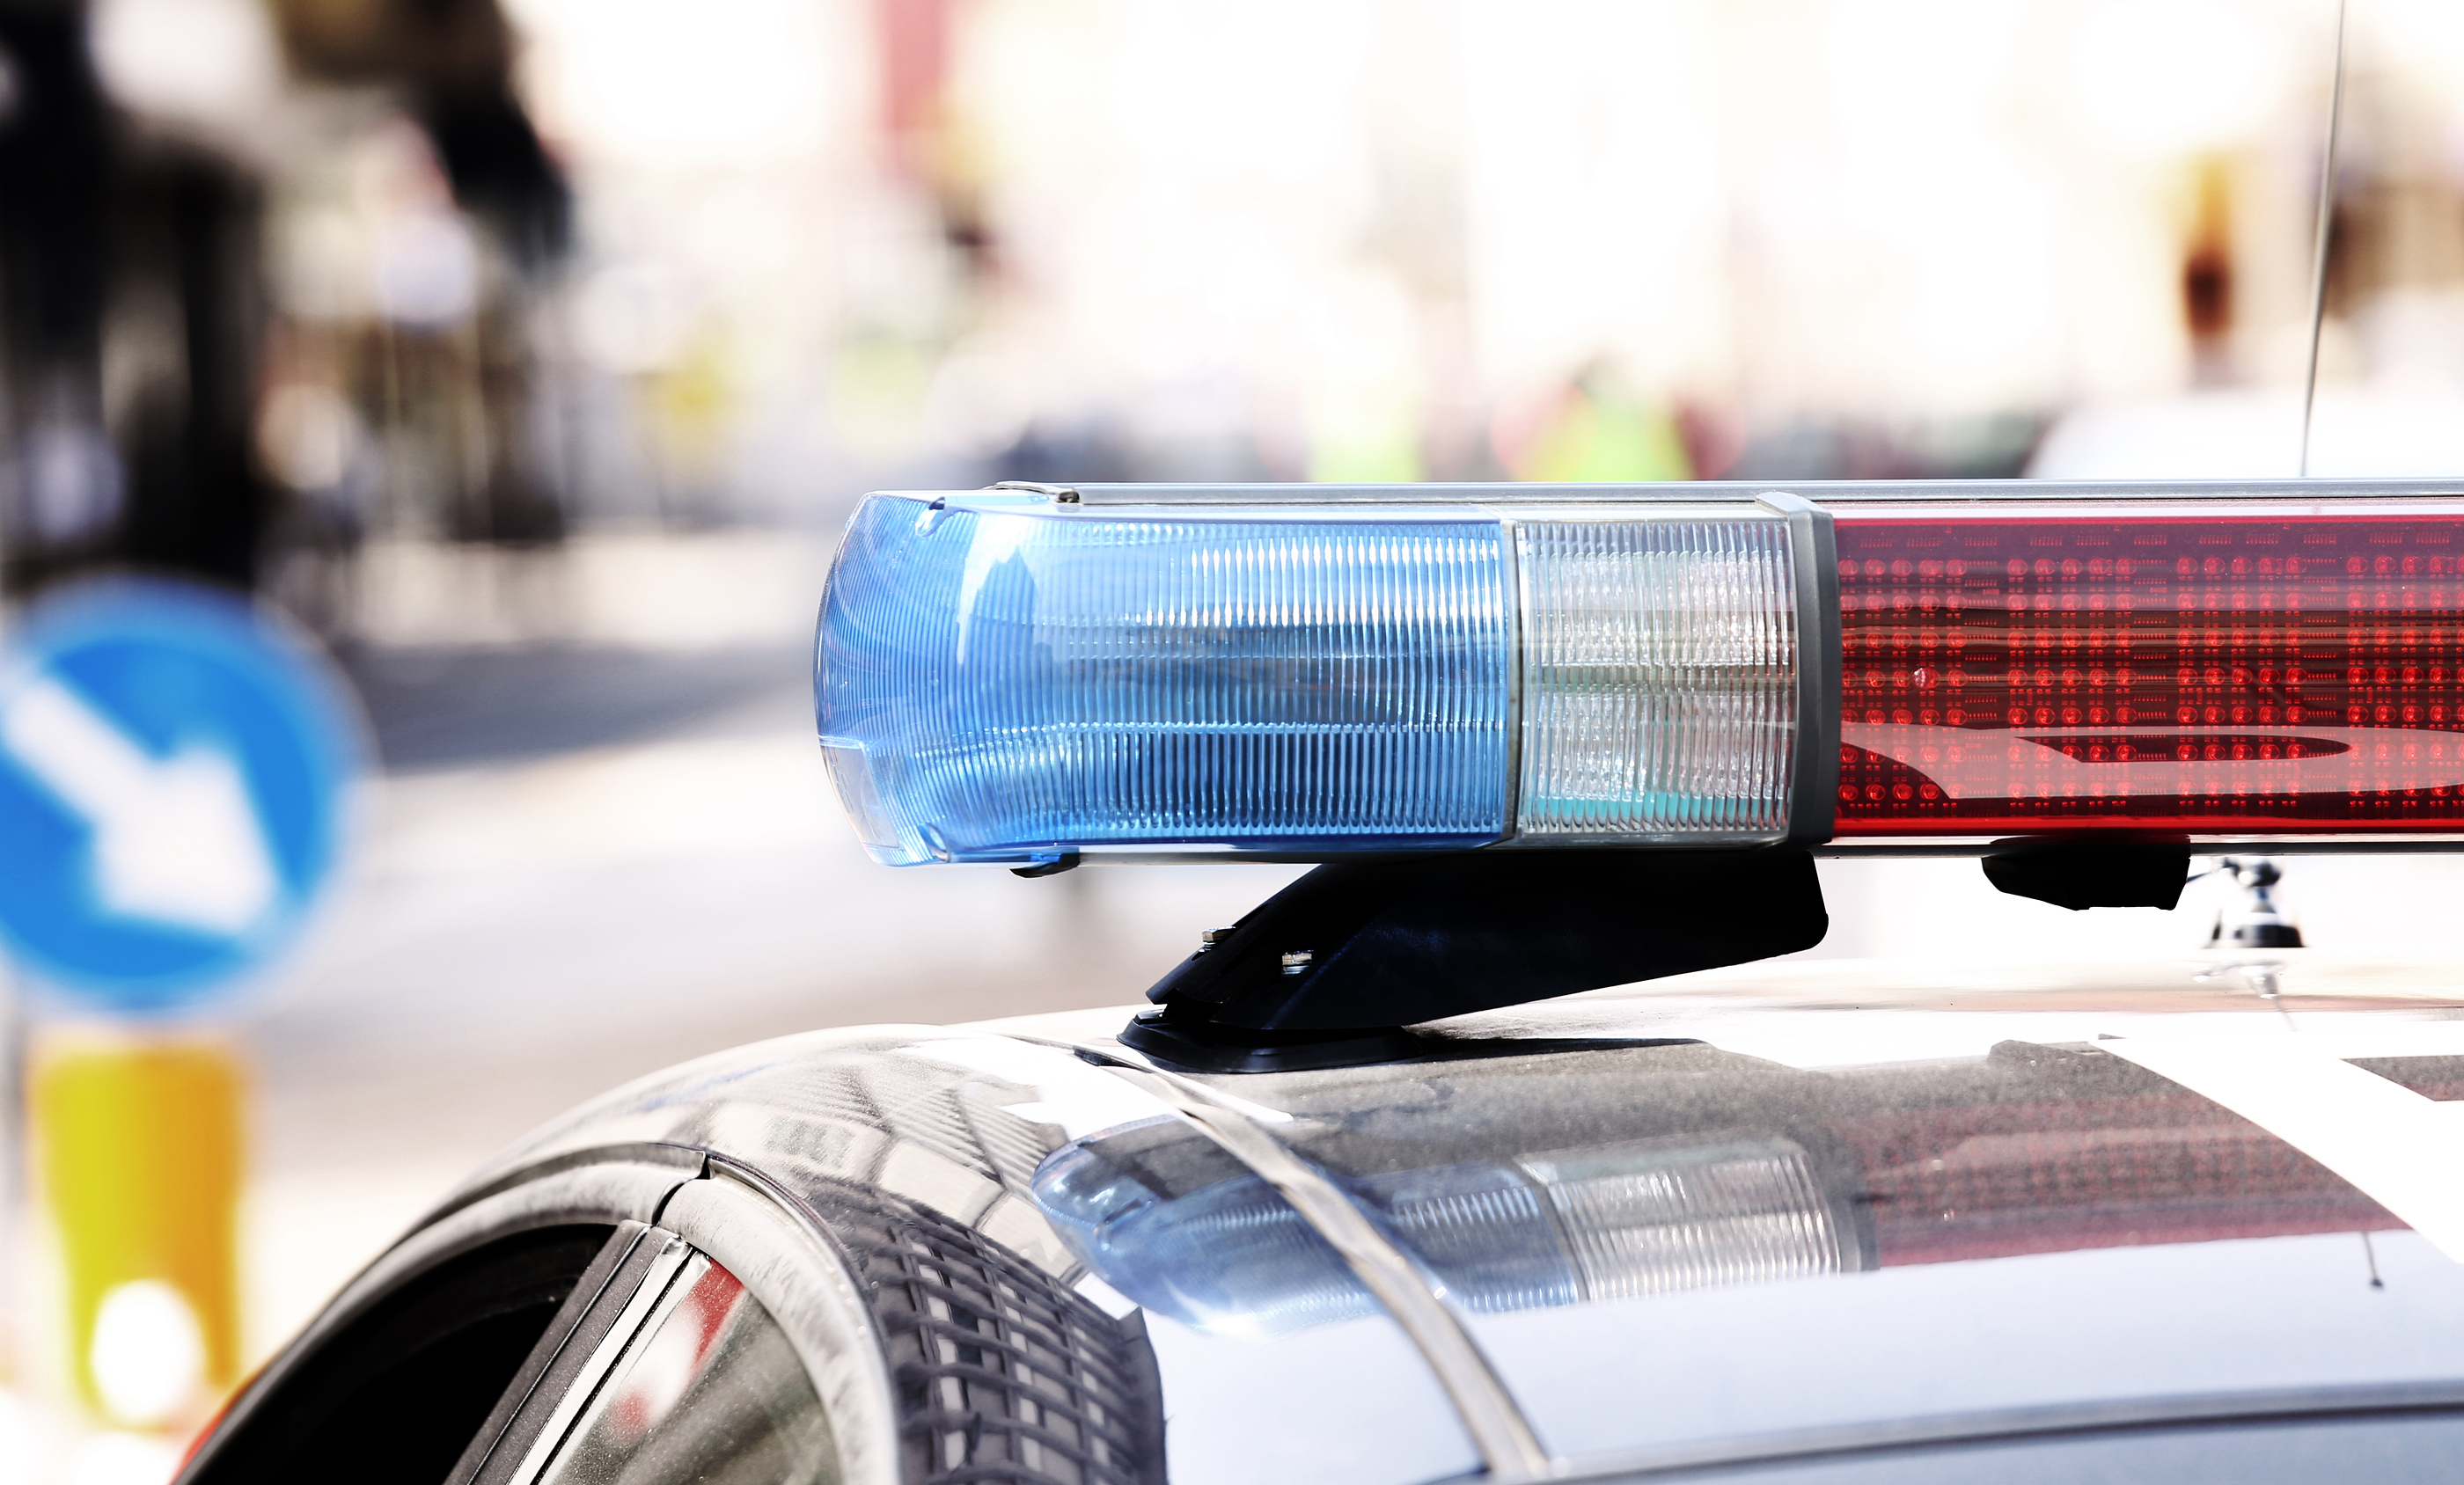 Dui Offenders Now Eligible For Limited Driver U0026 39 S License In Pa